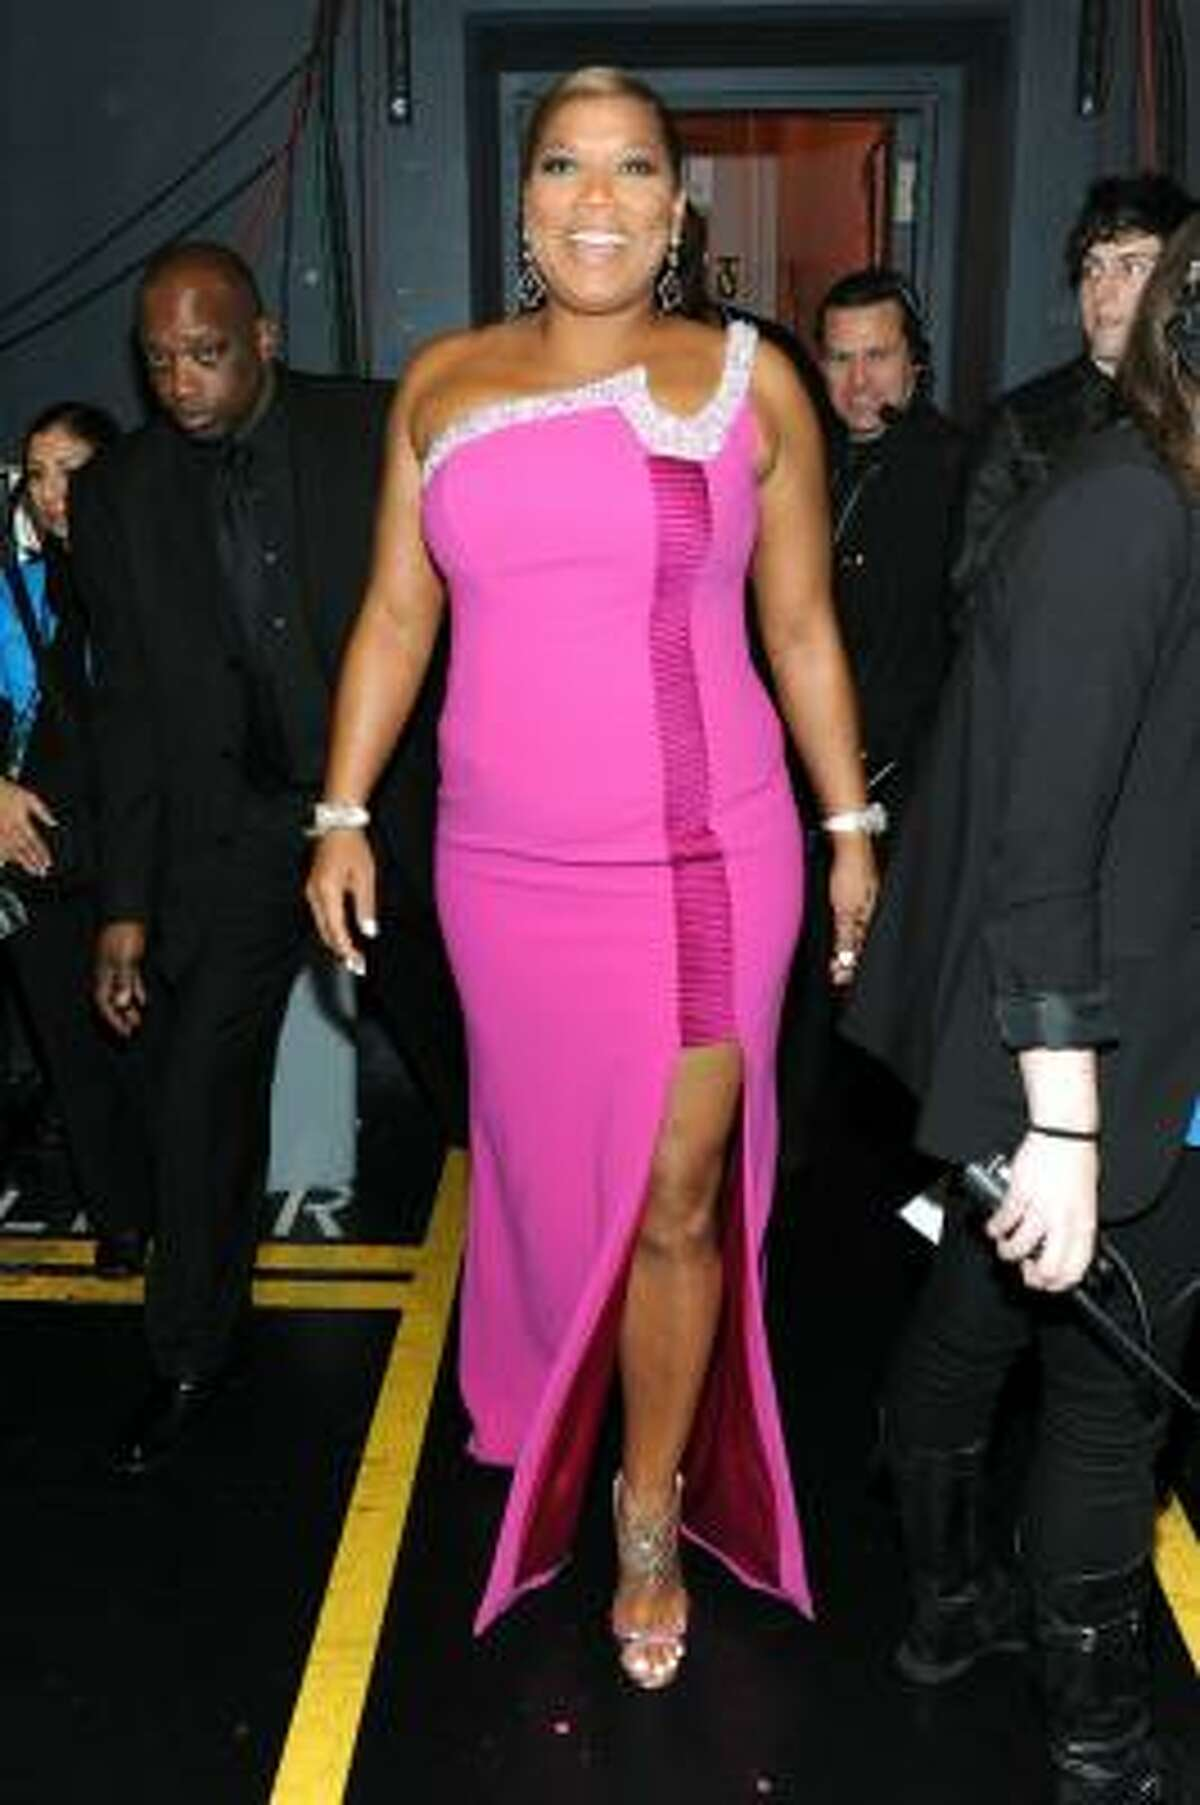 Queen Latifah's second bad choice of the evening.